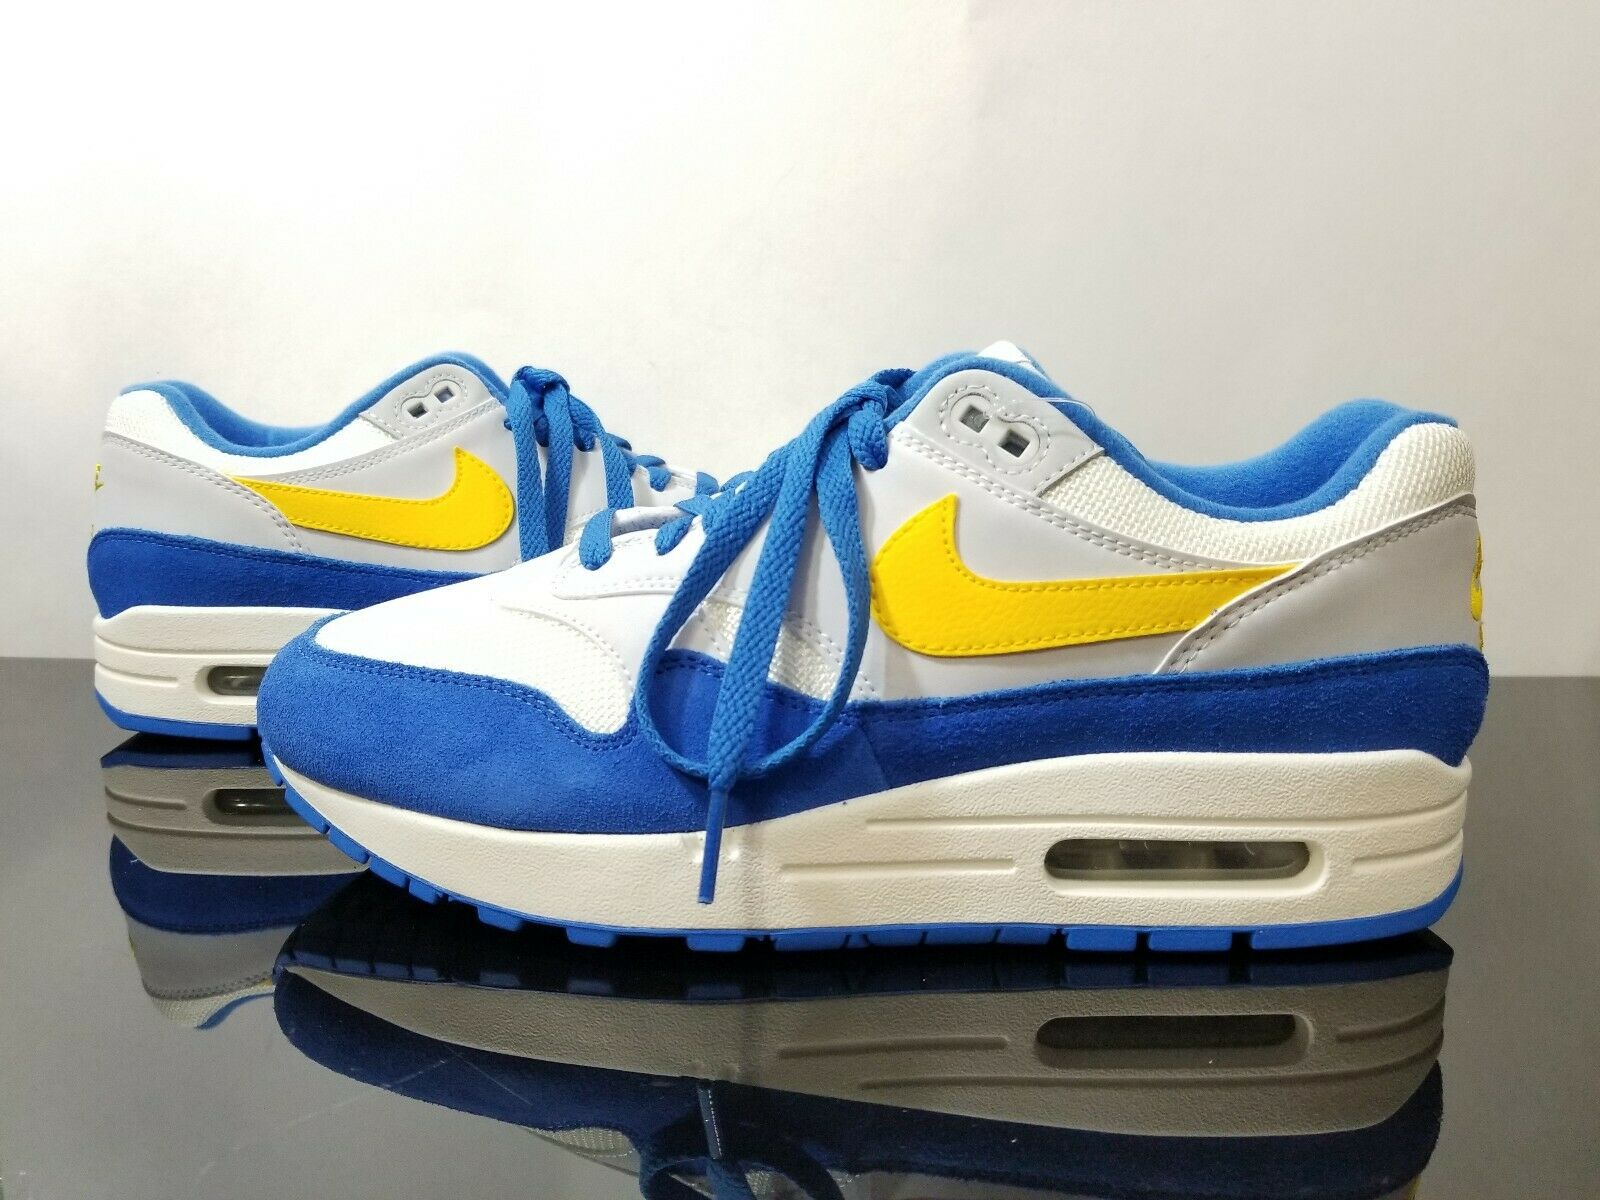 sneakers for cheap 623f9 745e9 ... New Nike Men s Air Max 1 Shoes. Style Number  AH8145-108. Color  Sail  Amarillo-Pure Platinum-Signal Blue. Gender  Men   Adult. Size  Men US 7